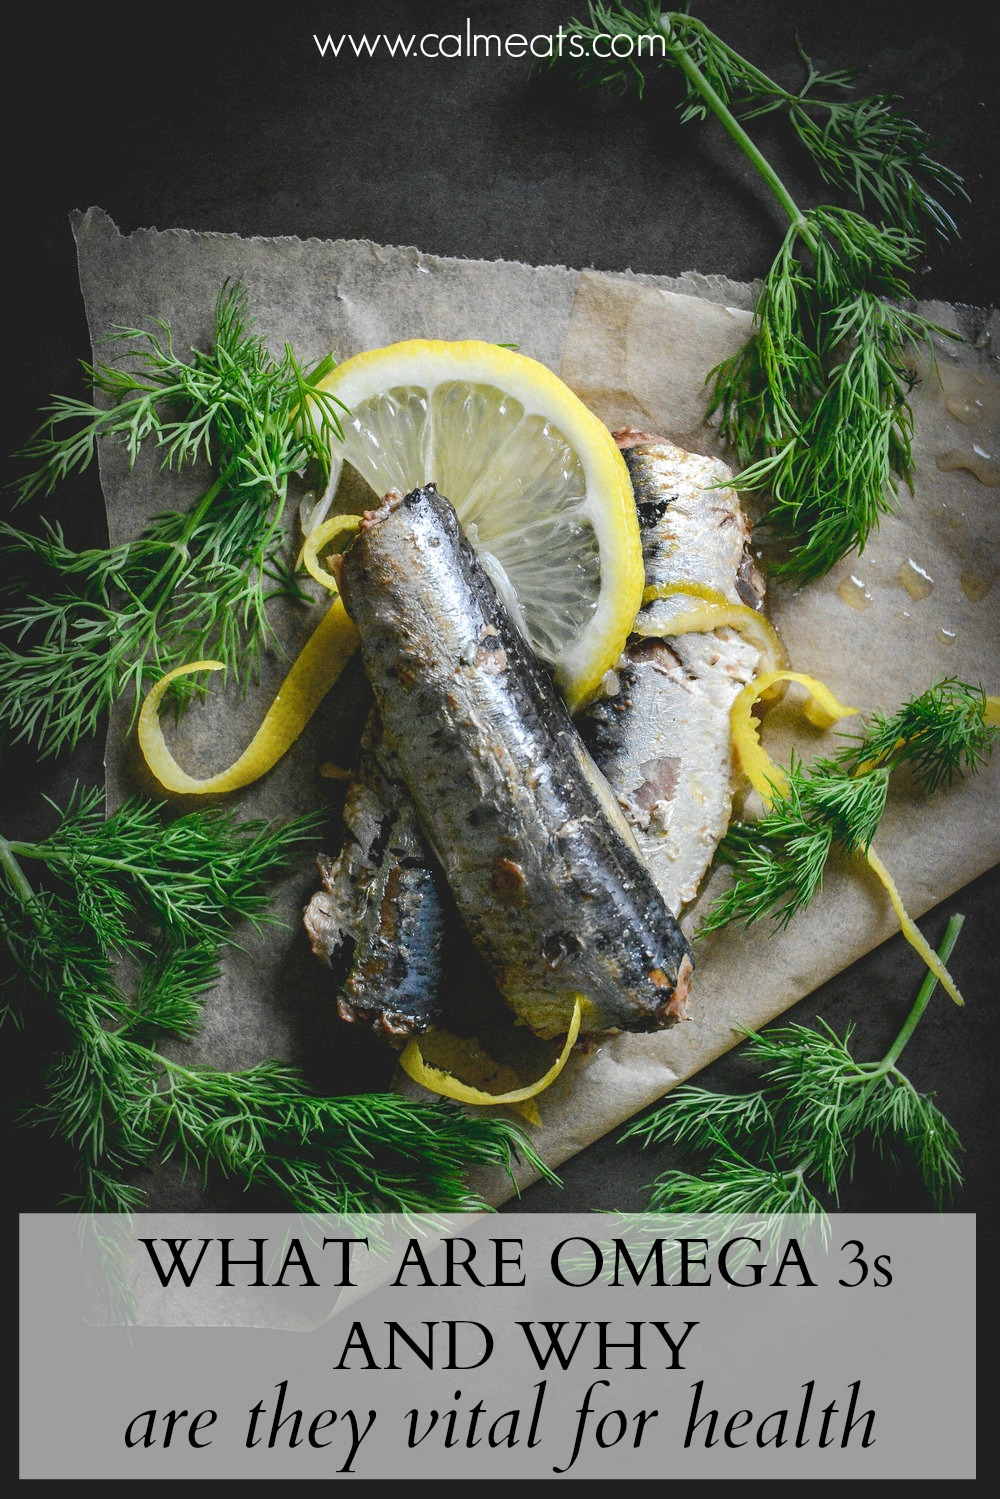 Our body doesn't produce omega 3 fatty acids and we have to obtain these from food. Find out all the benefits of consuming omega 3 fatty acids. #calmeats, #omega3fattacids, #omega3s, #sardines, #foodforanxiety, #foodfordepression, #realfood